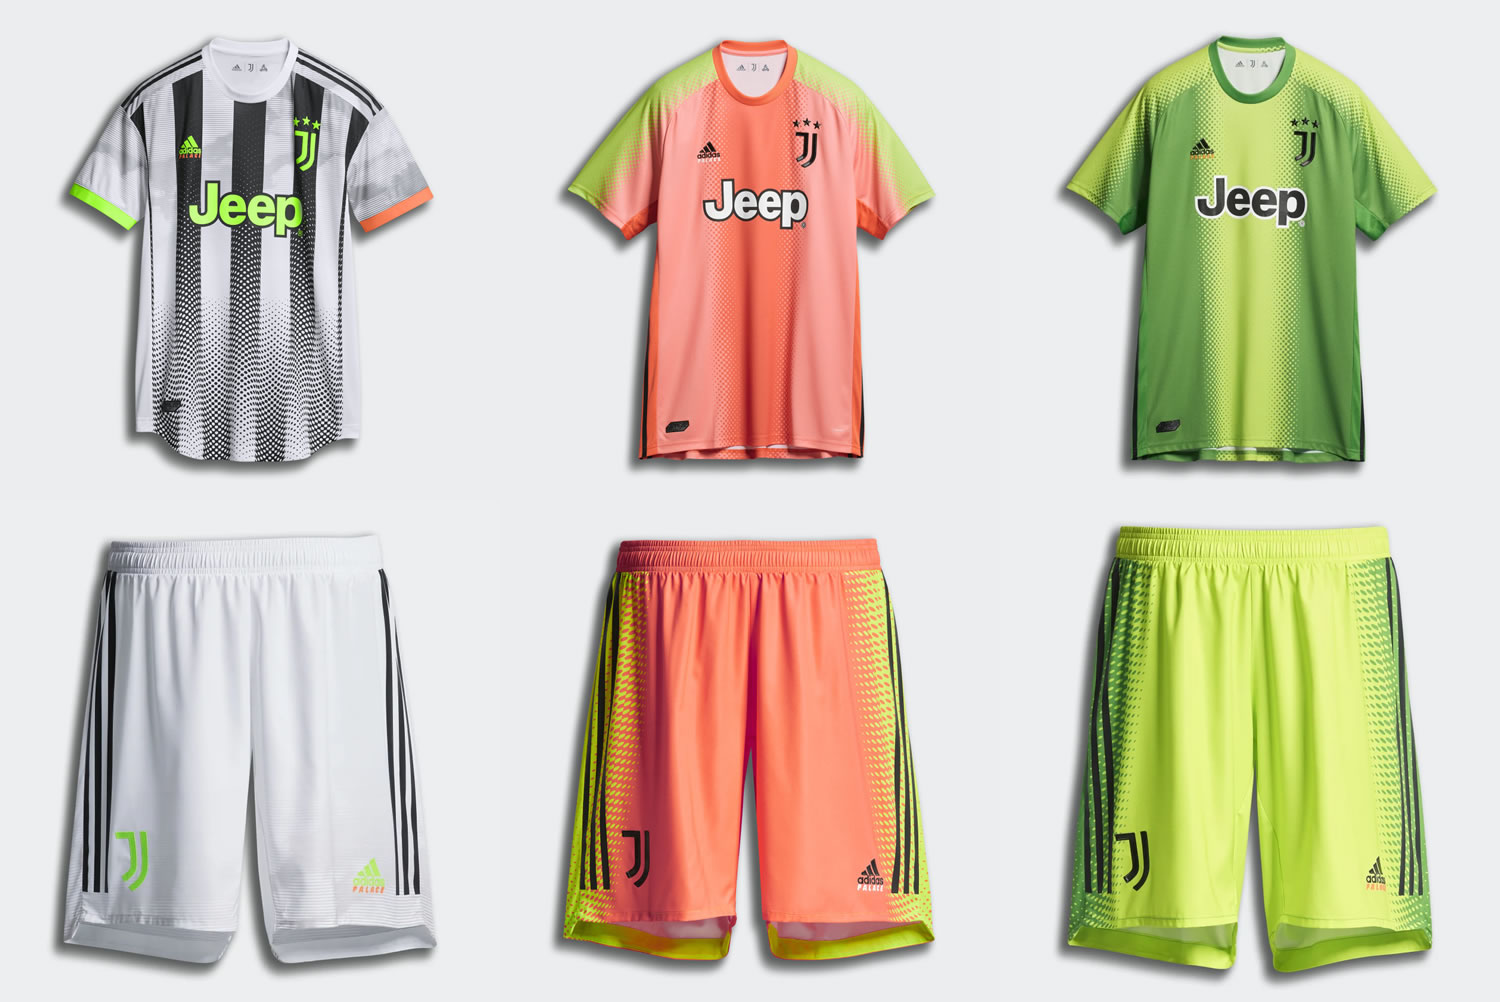 Adidas X Palace X Juventus 4th Kit Collaboration Every Piece From The Collection Michael 84